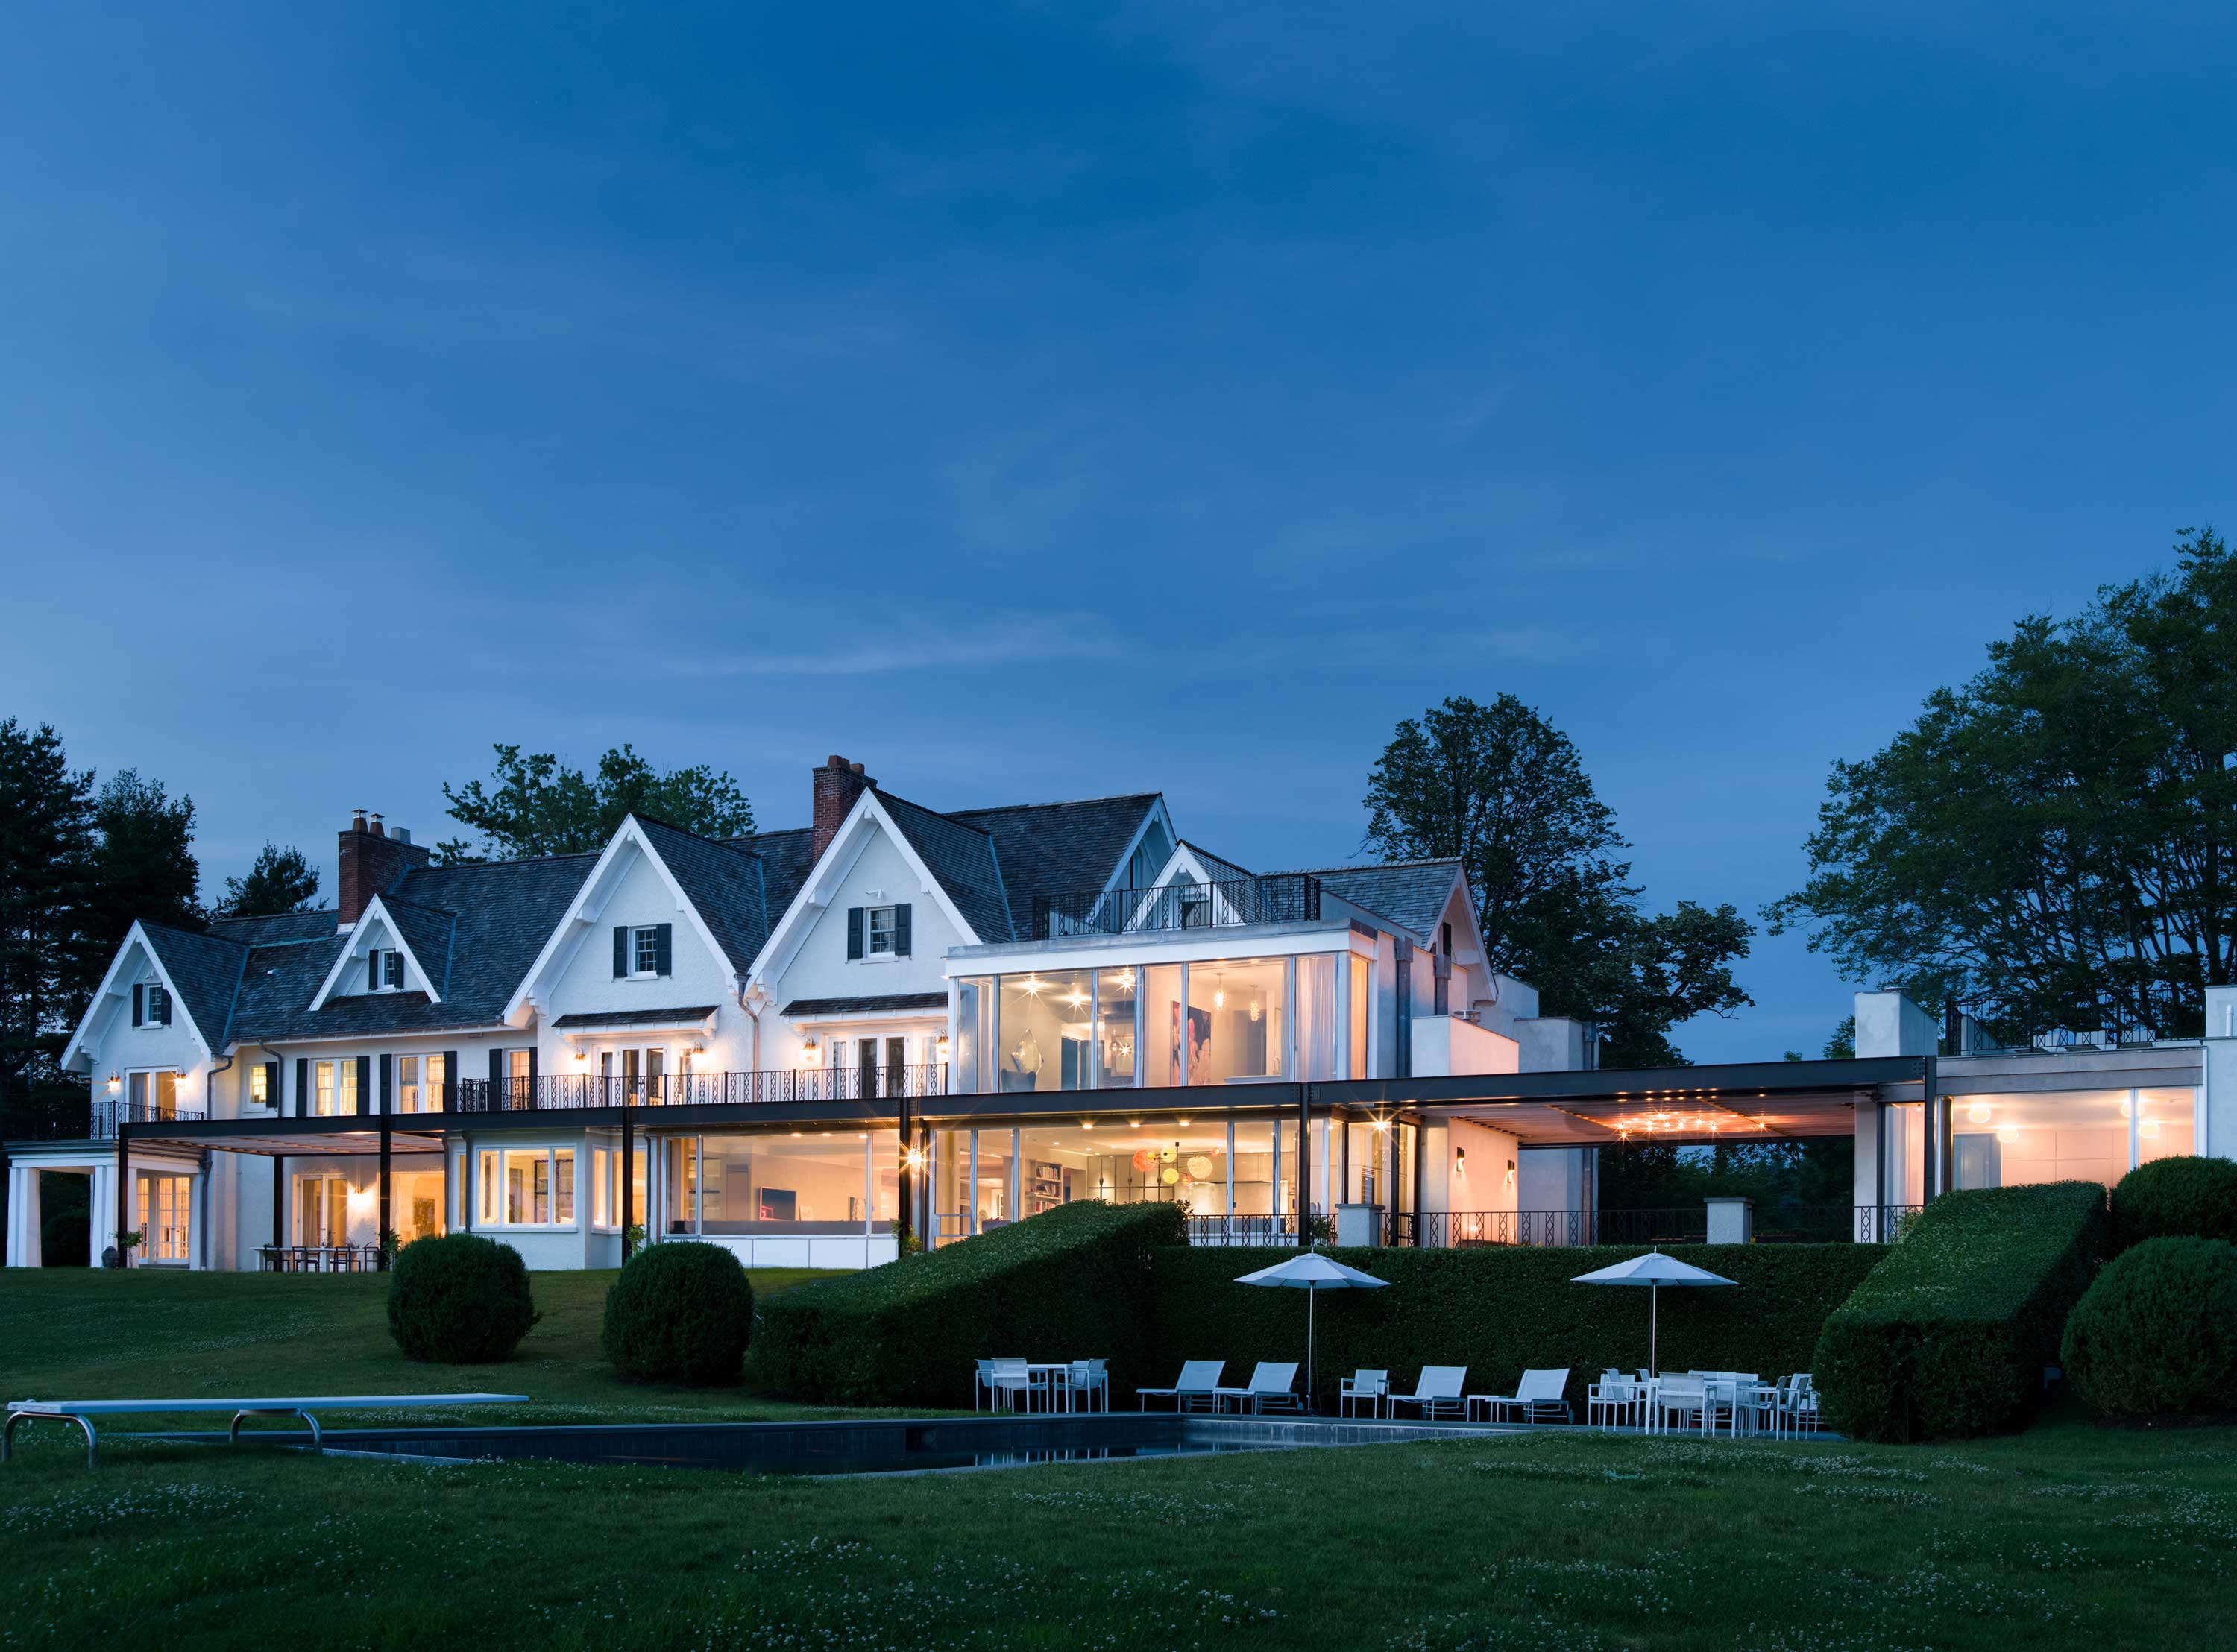 This six-acre waterfront estate is a boater's paradise on Long Island Sound, yet is only 55 minutes' drive from New York City.